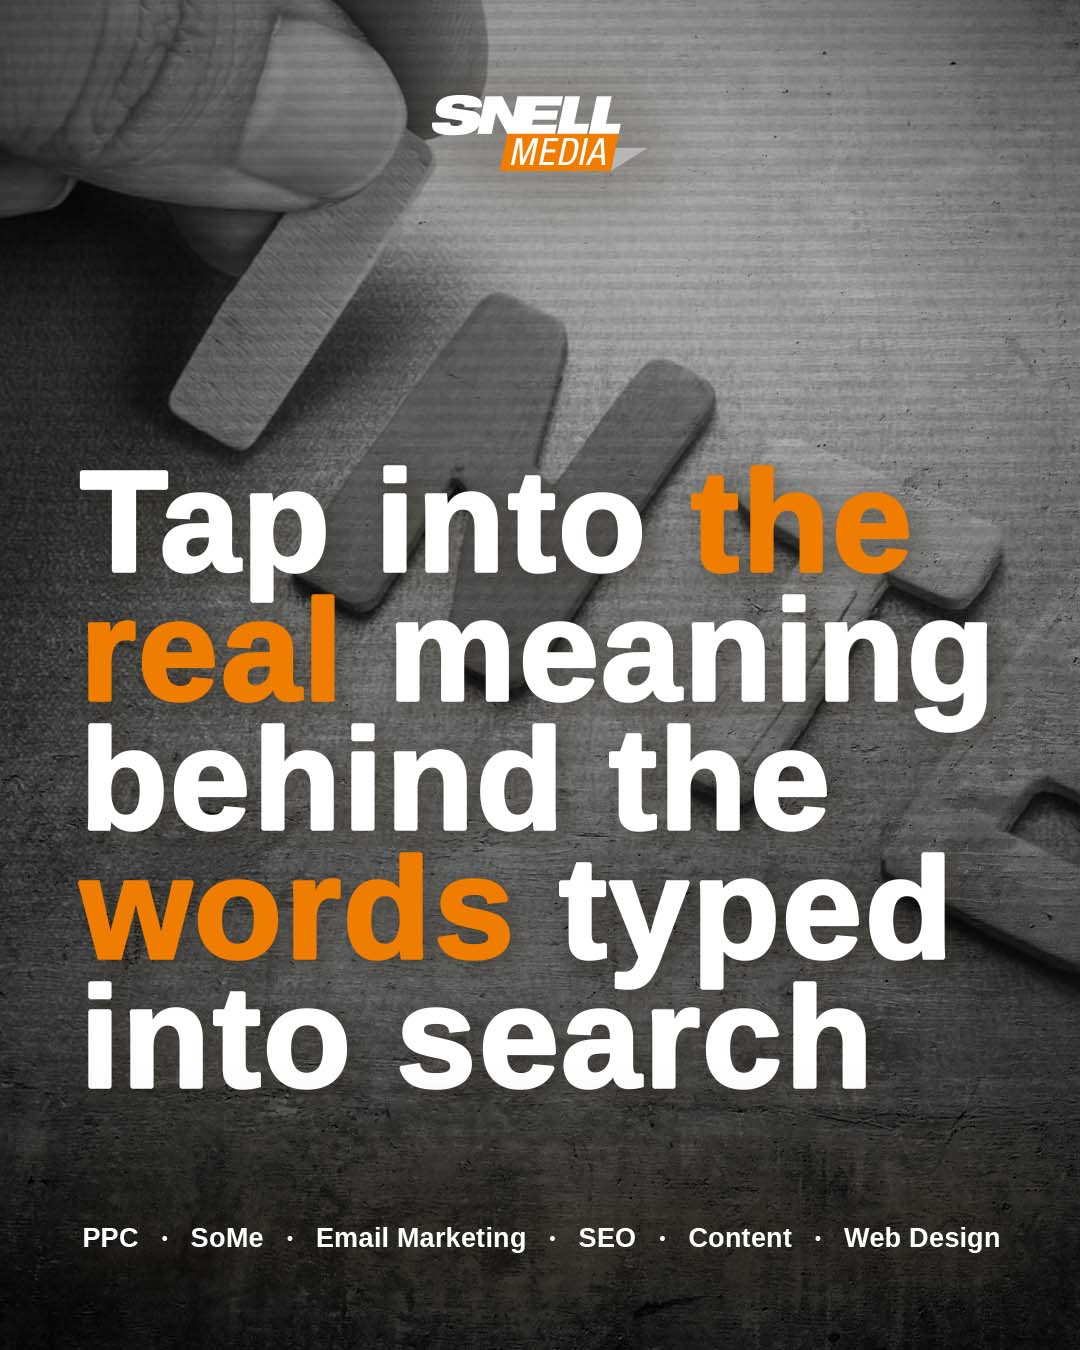 Tap into the real meaning behind the words typed into search